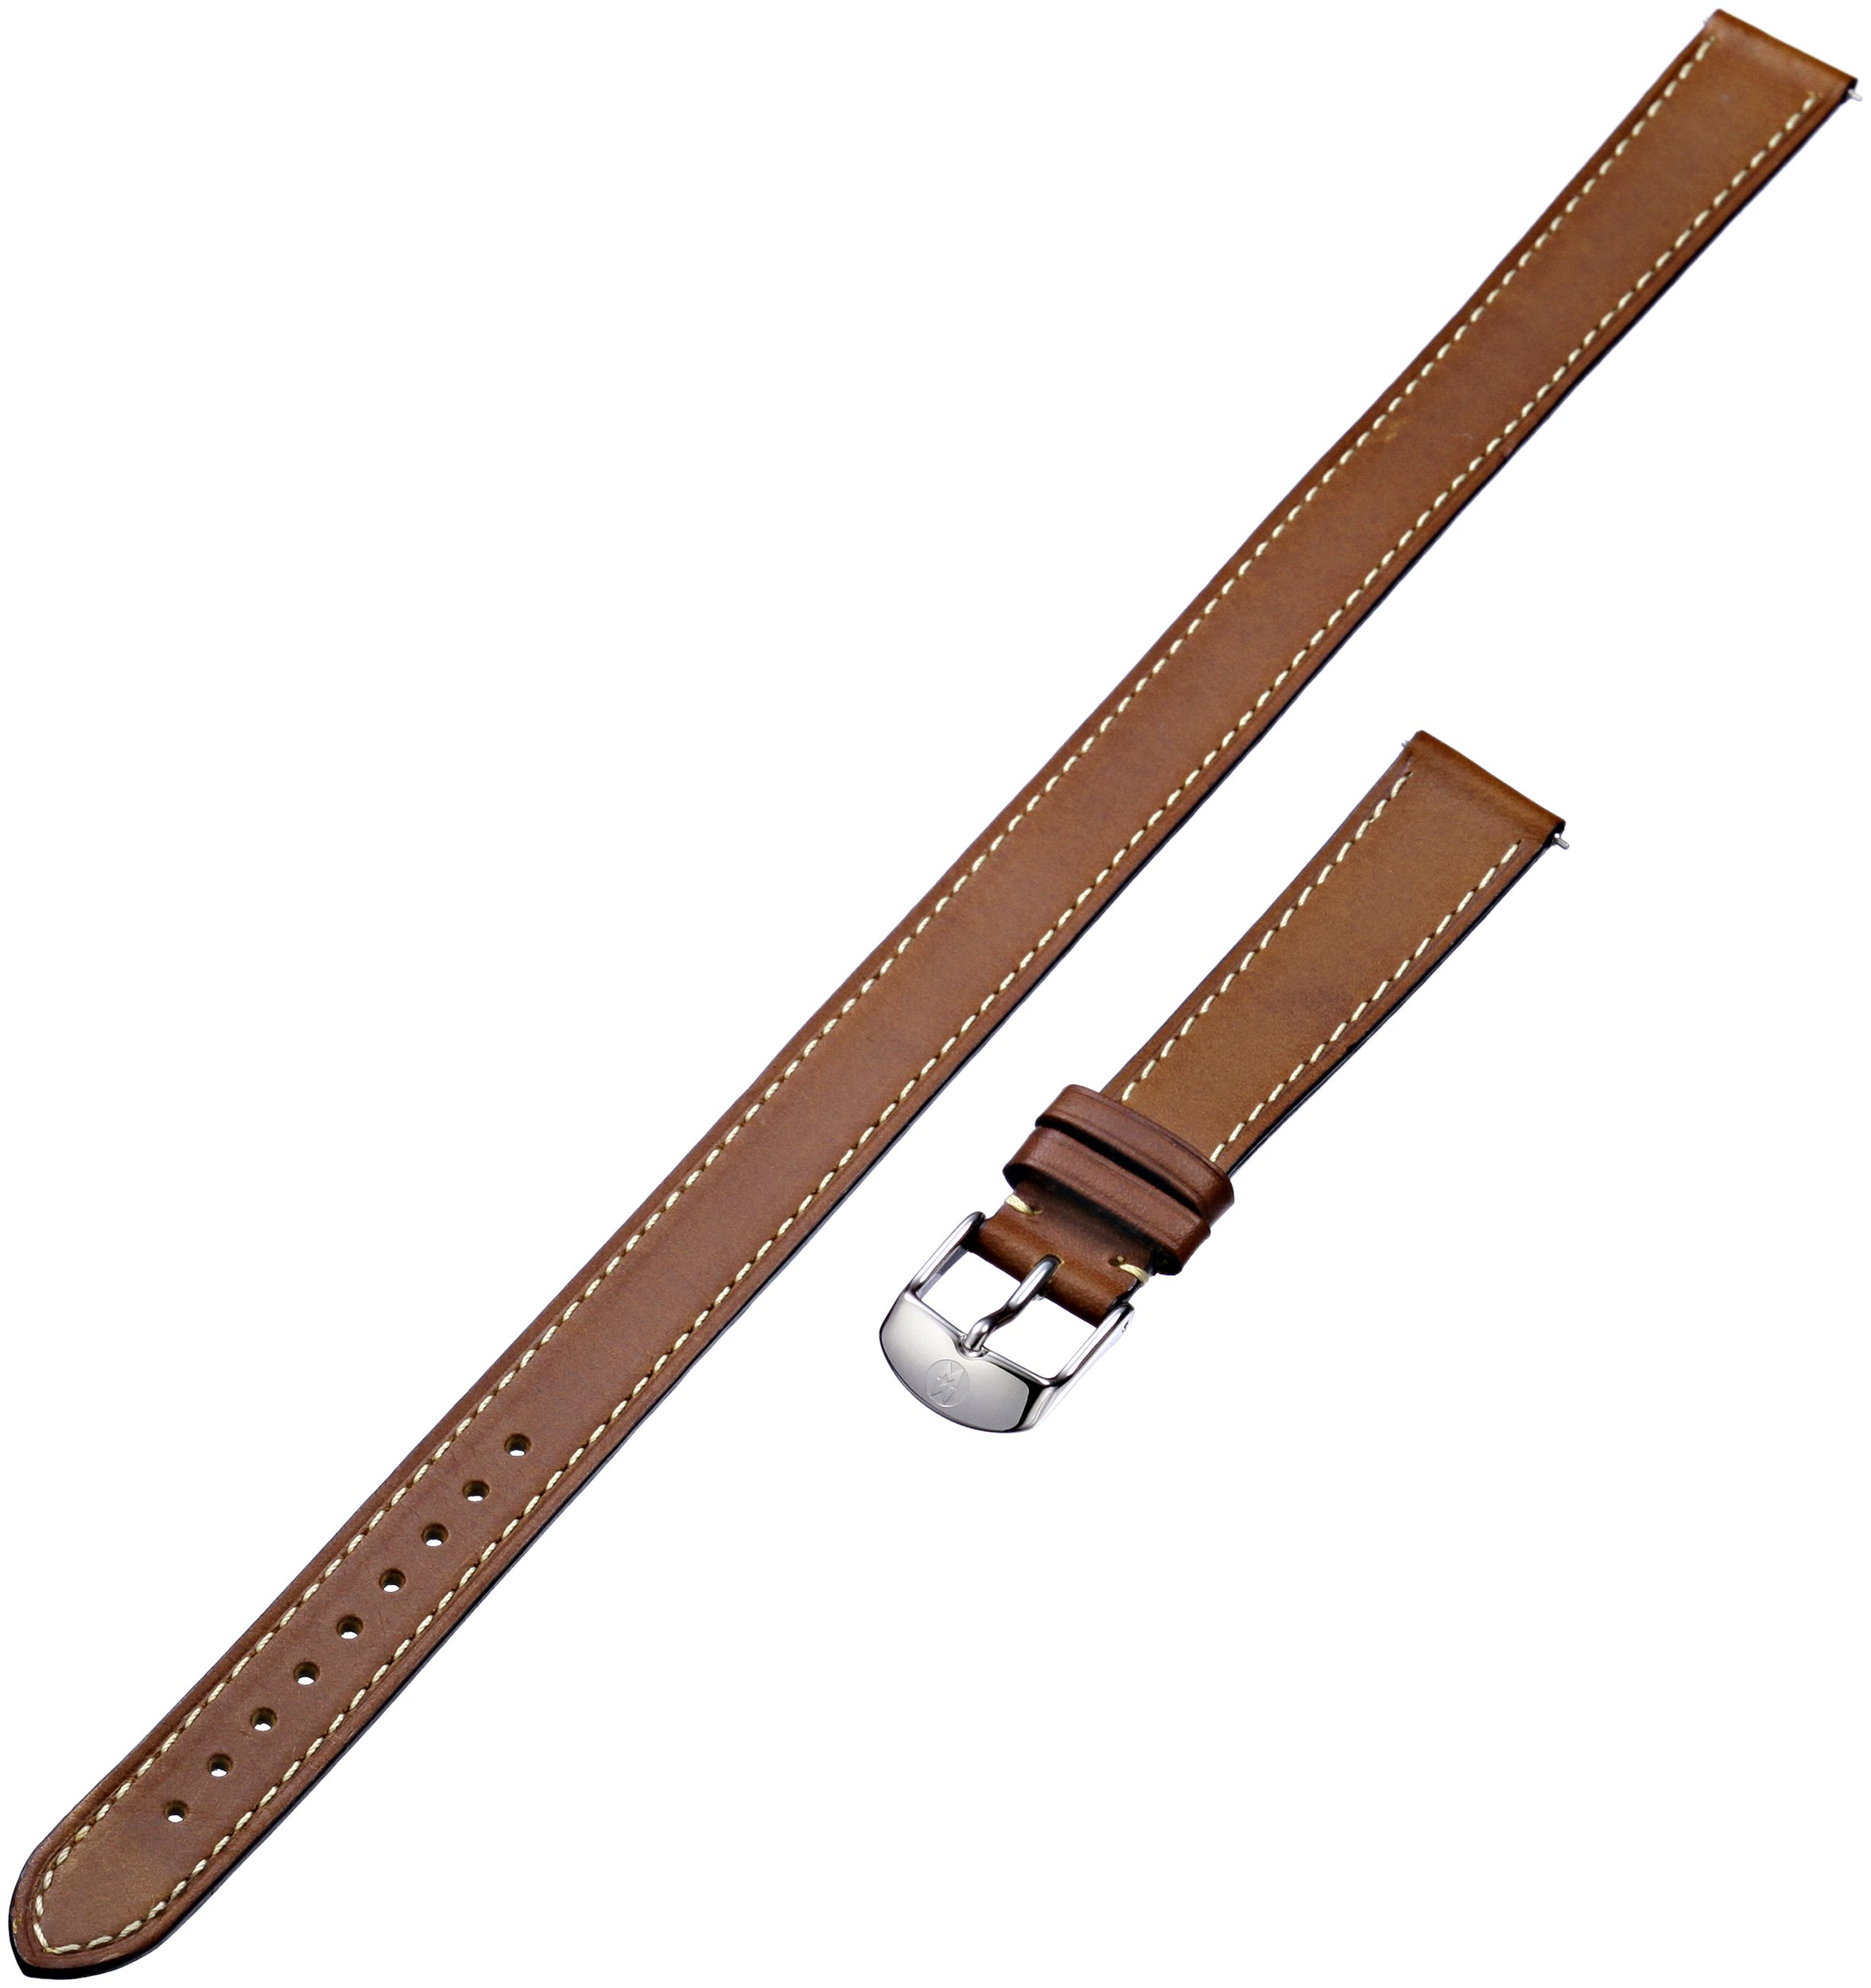 MICHELE MS16BX270216 16mm Leather Calfskin Brown Watch Strap